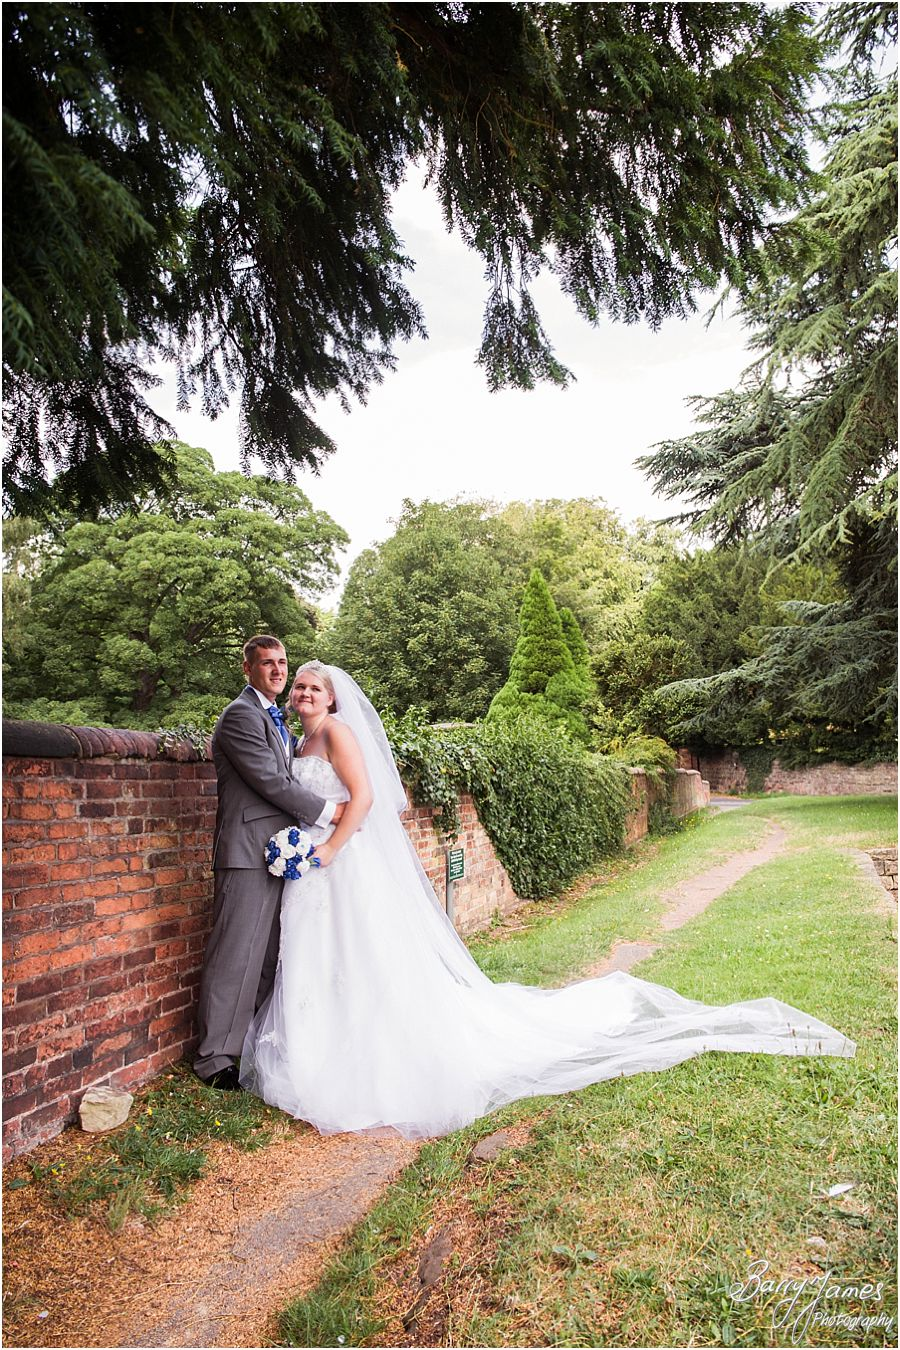 Natural wedding photographs at St Chads Church in Lichfield by Recommended Lichfield Wedding Photographer Barry James